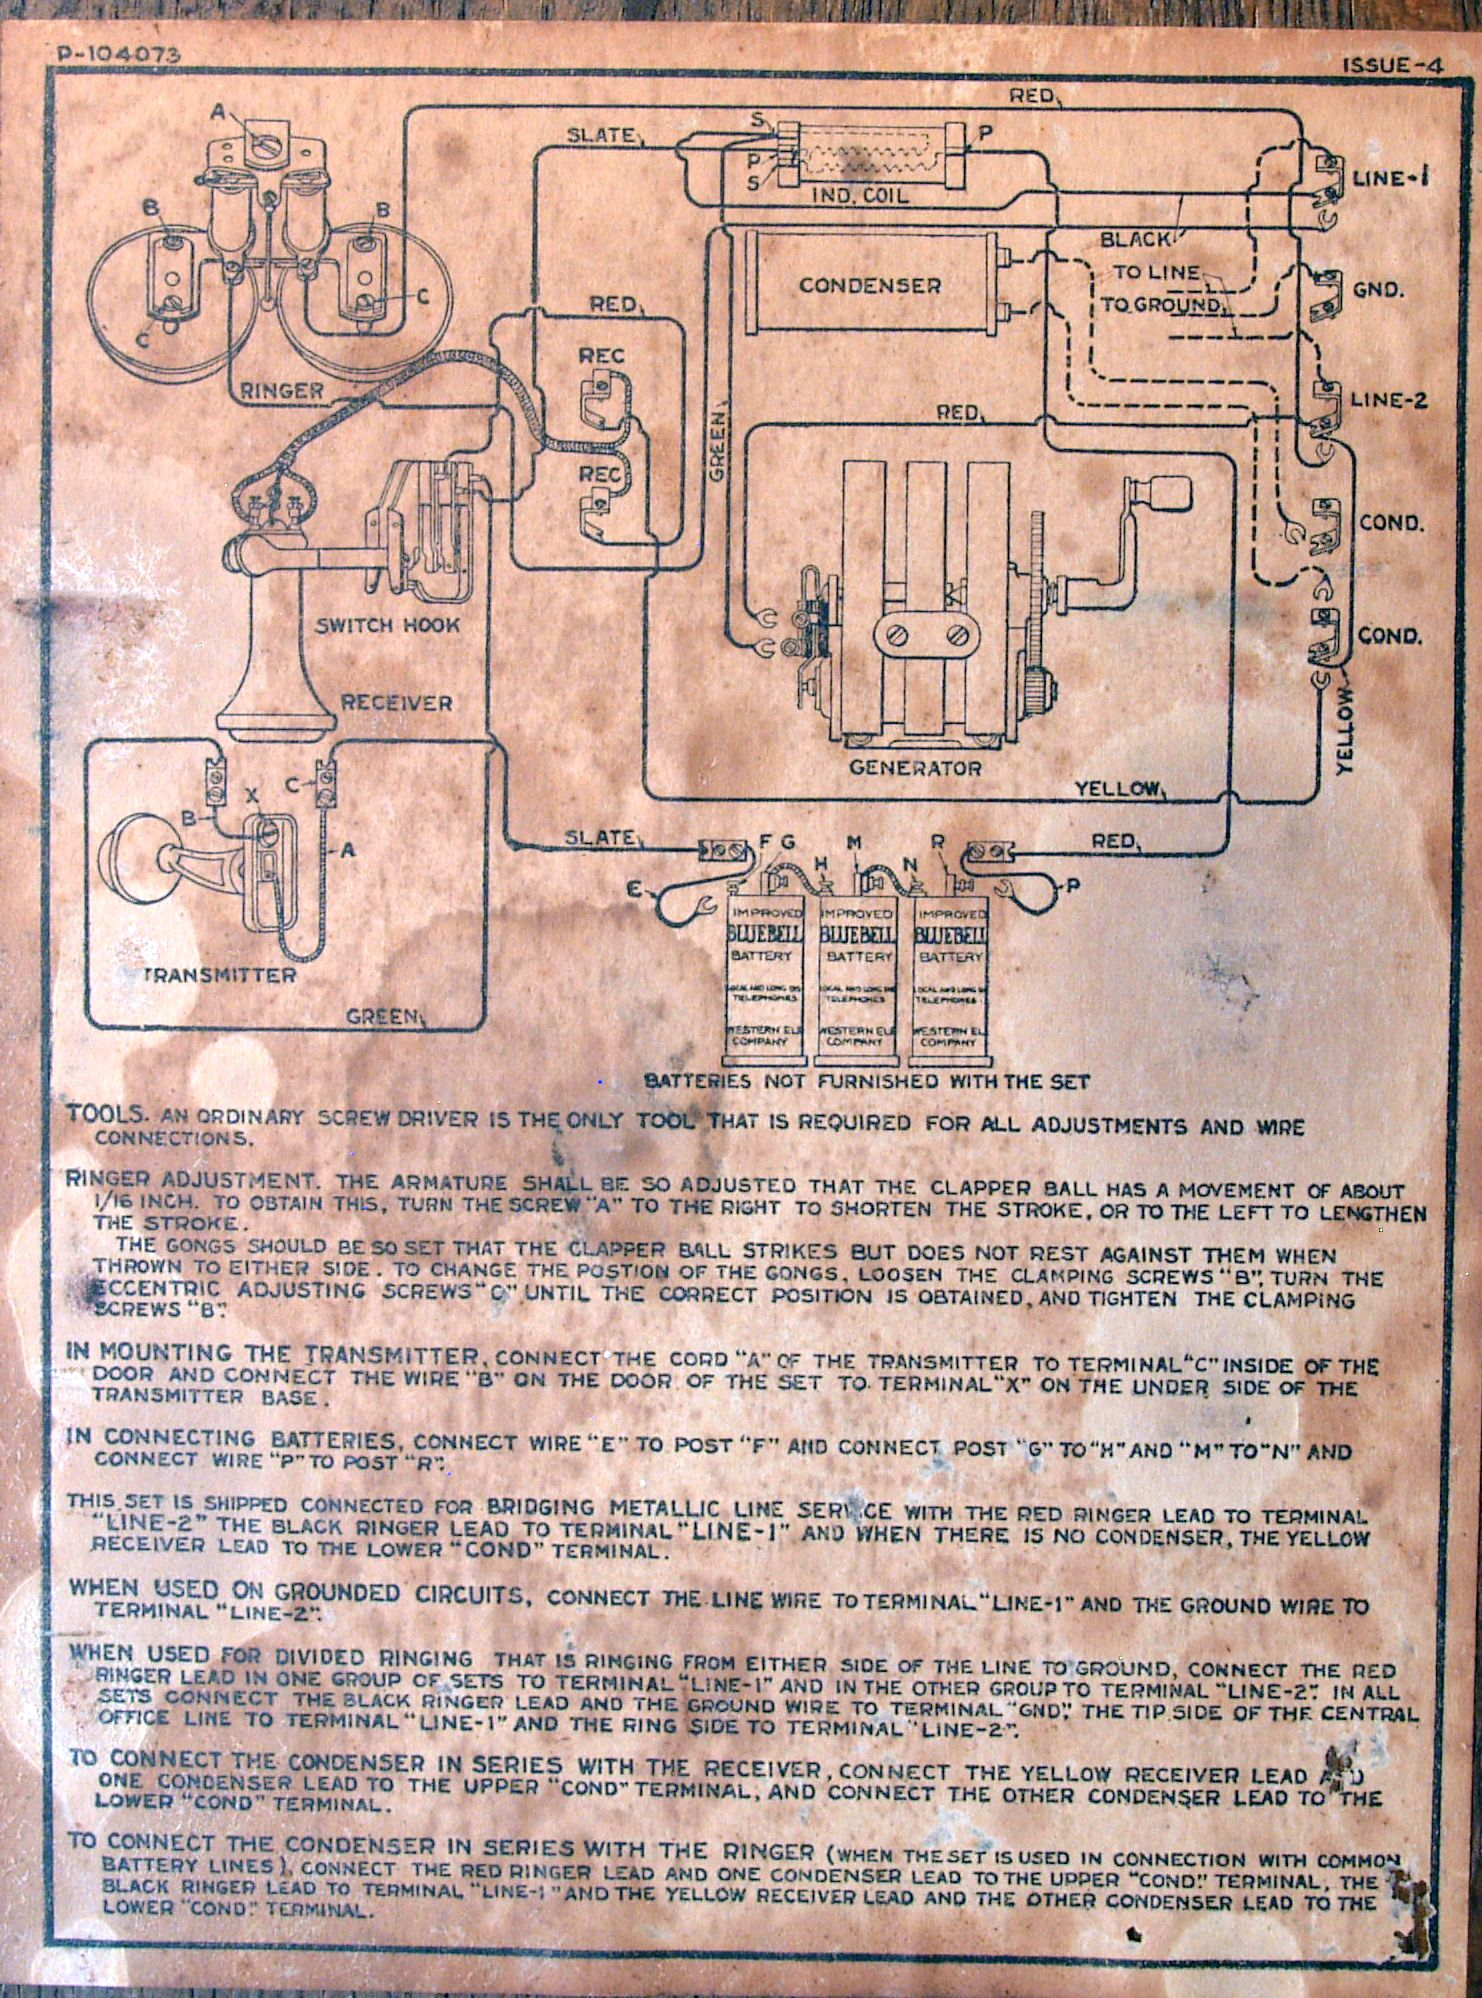 WE_Wall_Phone_Schematic?resize=665%2C897 telephone handset cable wiring diagram the best wiring diagram 2017 telephone handset cable wiring diagram at bakdesigns.co